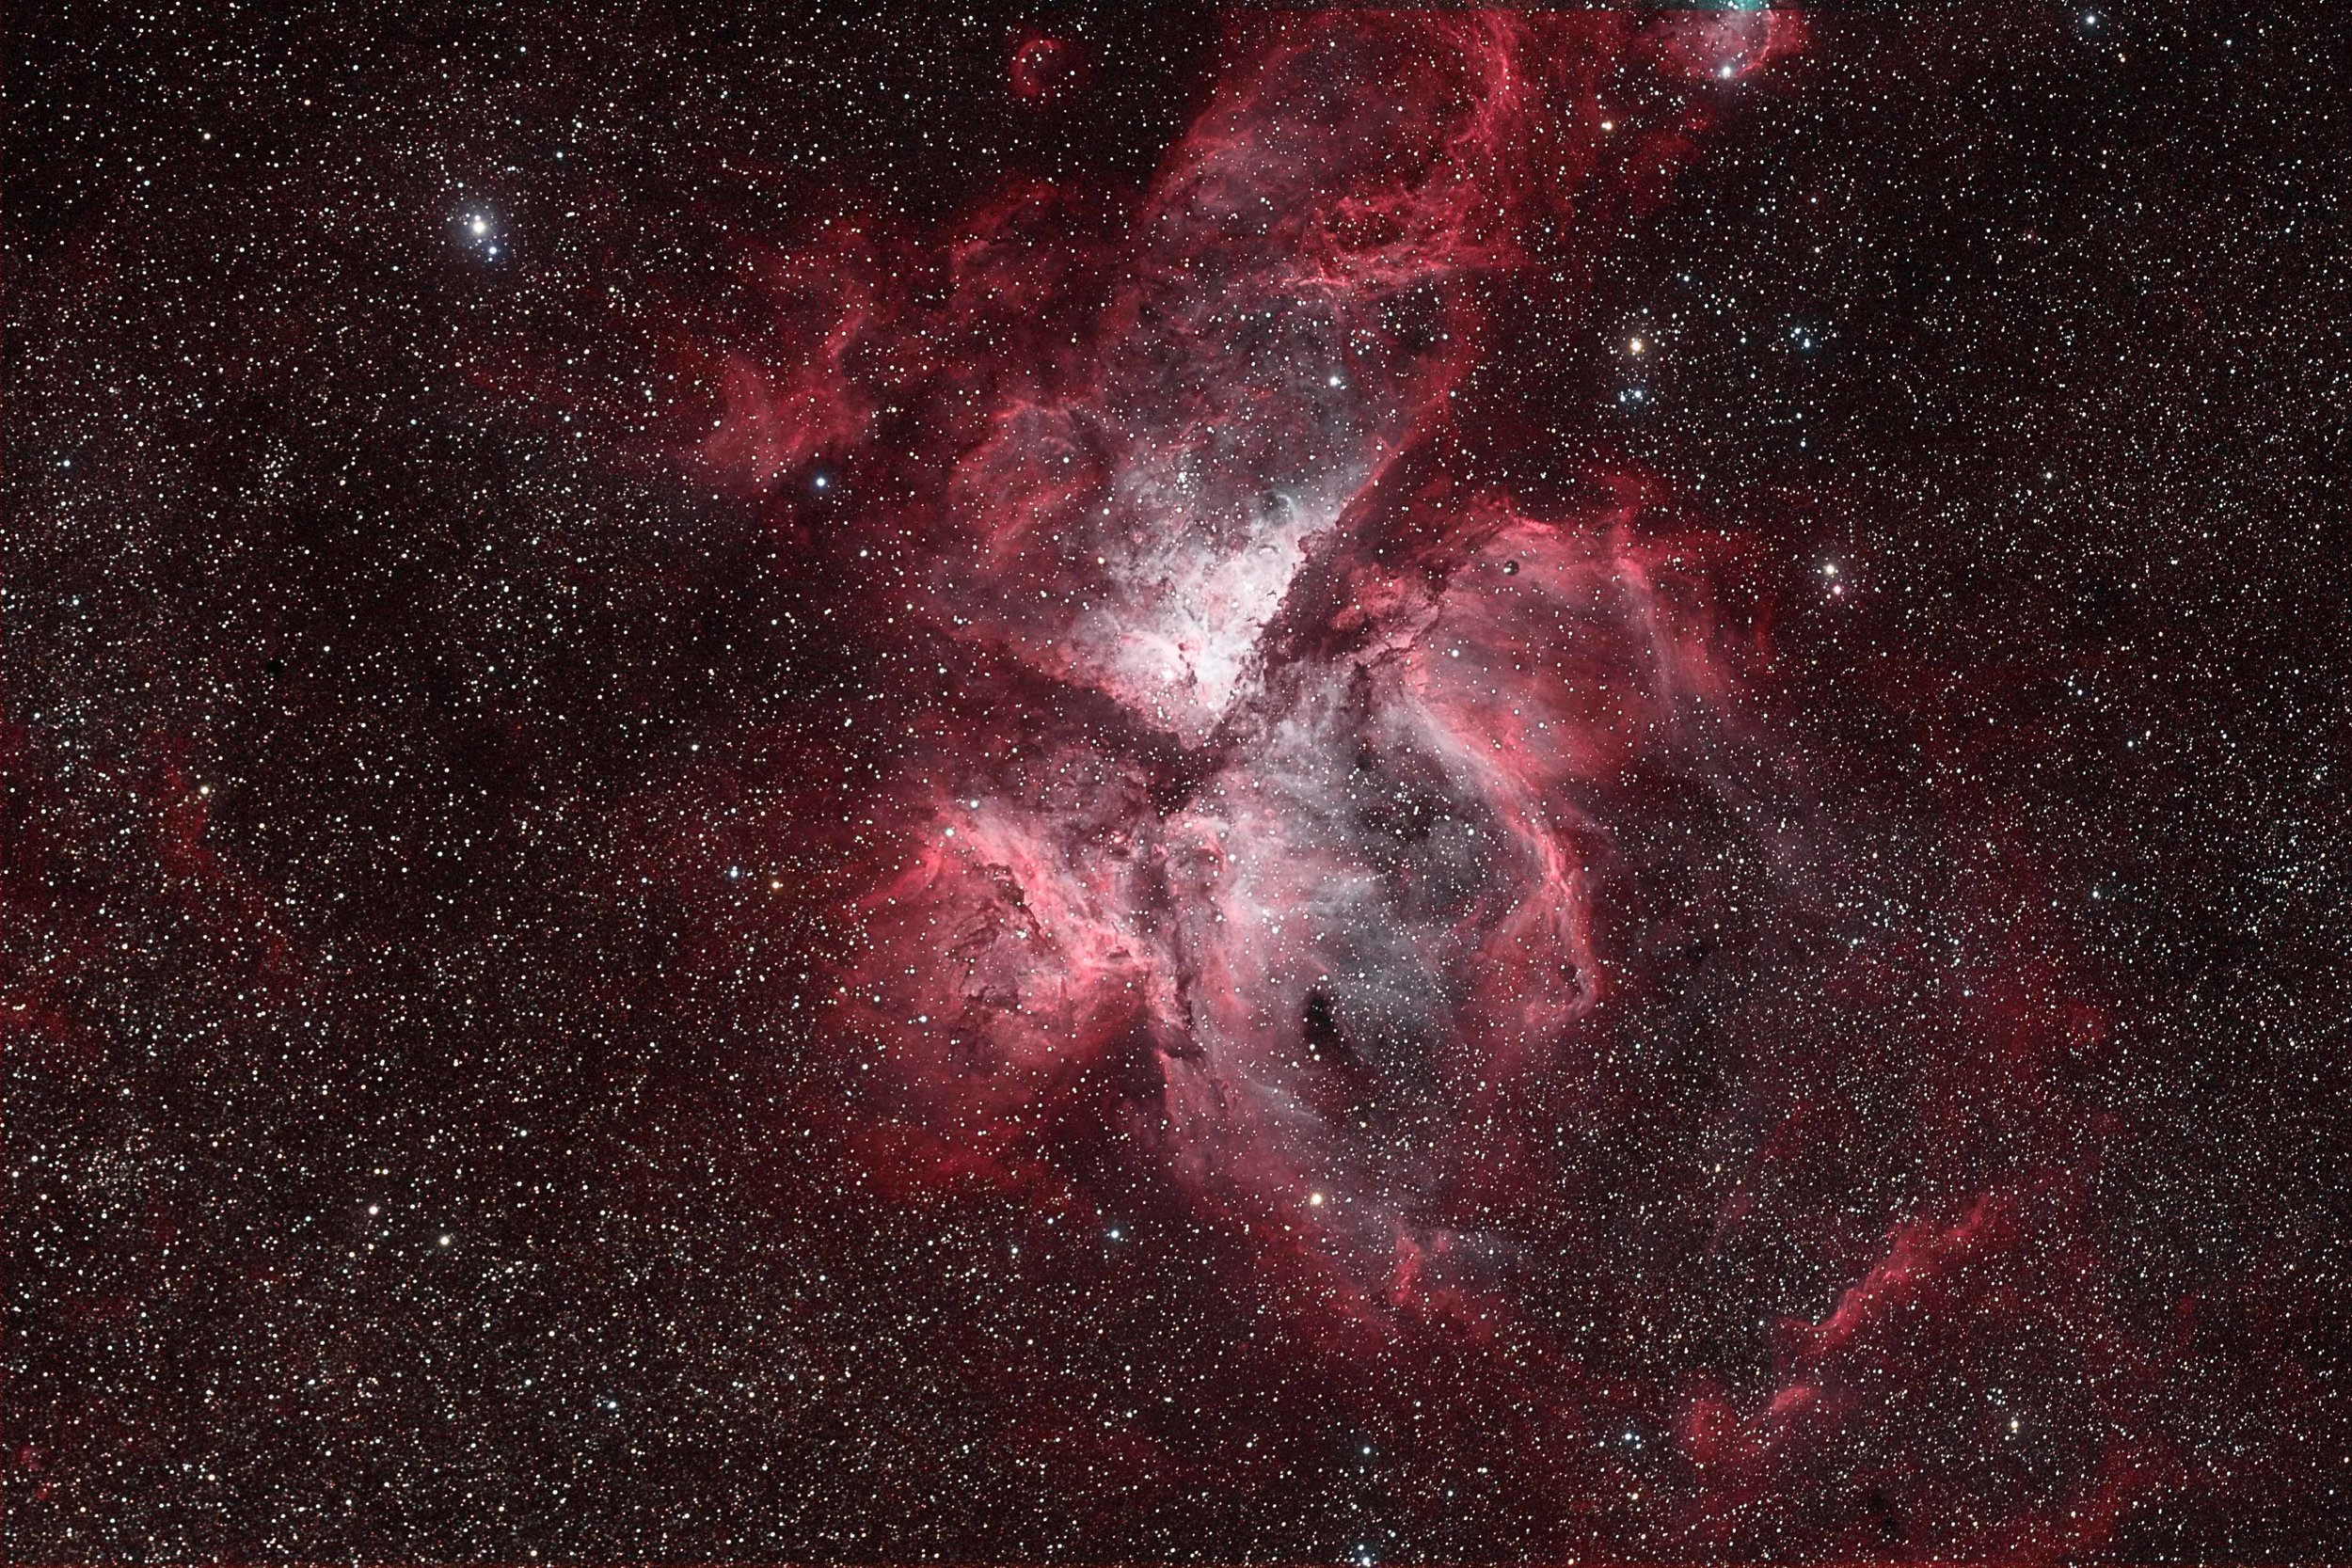 Calibrated-T12-eta carina-Final.jpg